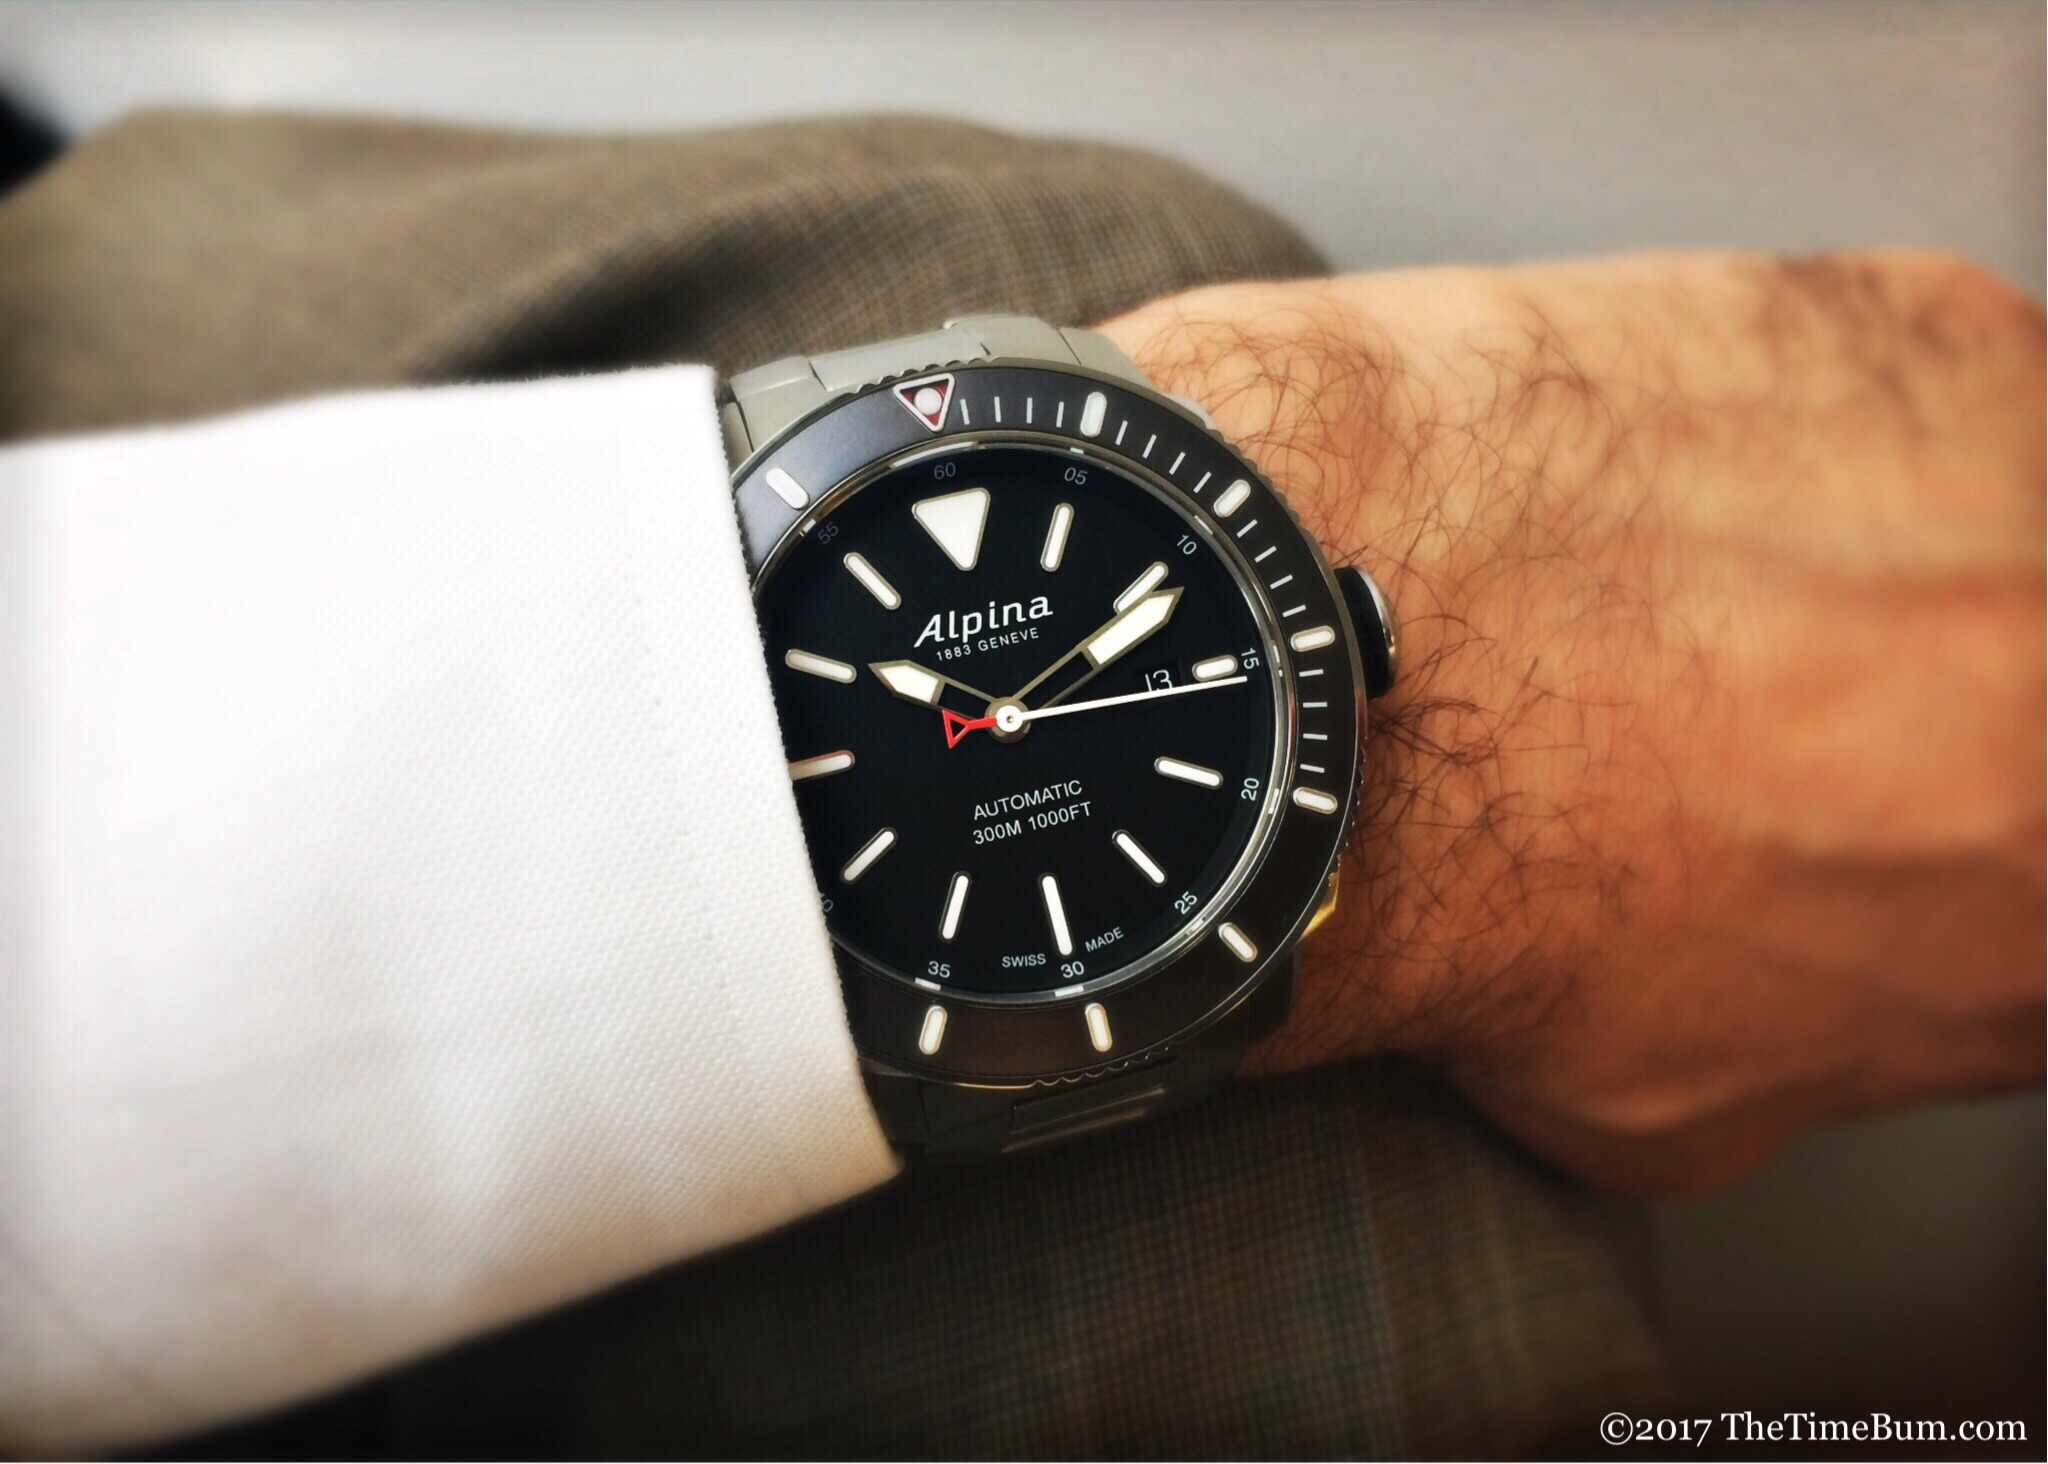 Alpina Seastrong Diver Automatic The Time Bum - Alpina diver watch